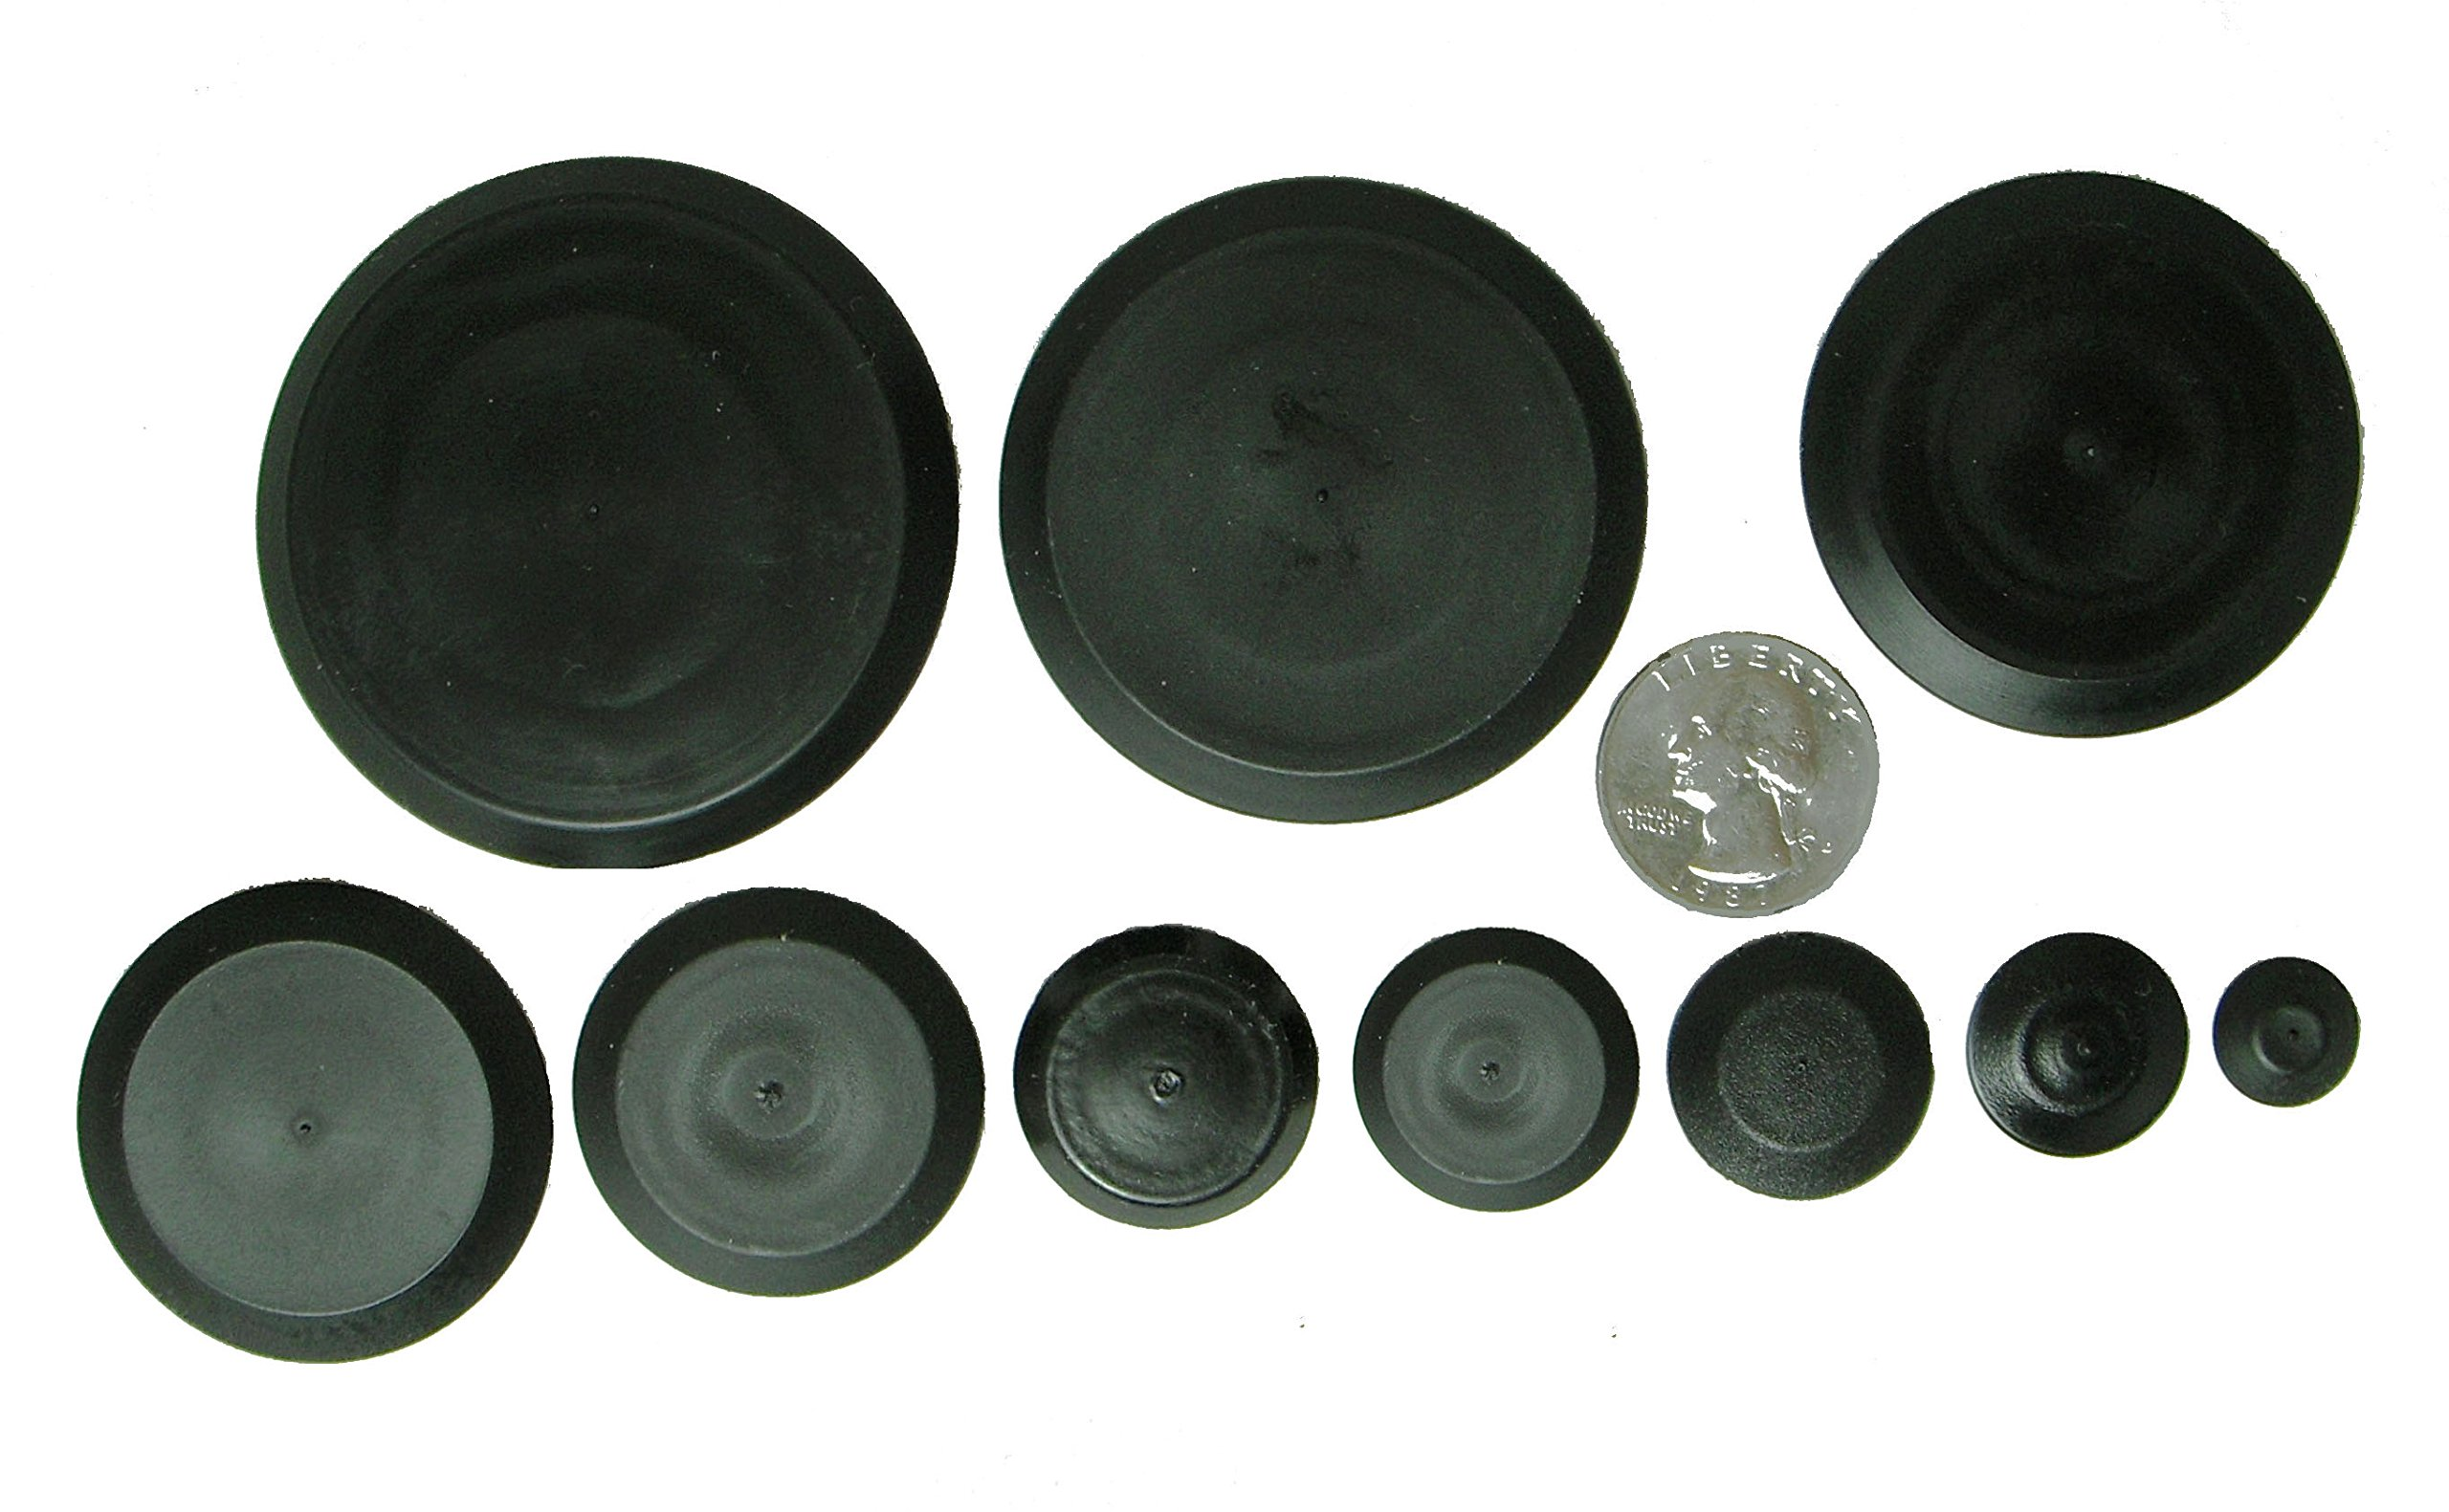 Upper Bound 60 Piece Flush Mount Black Hole Plug Assortment for Auto Body Sheet Metal 10 Sizes